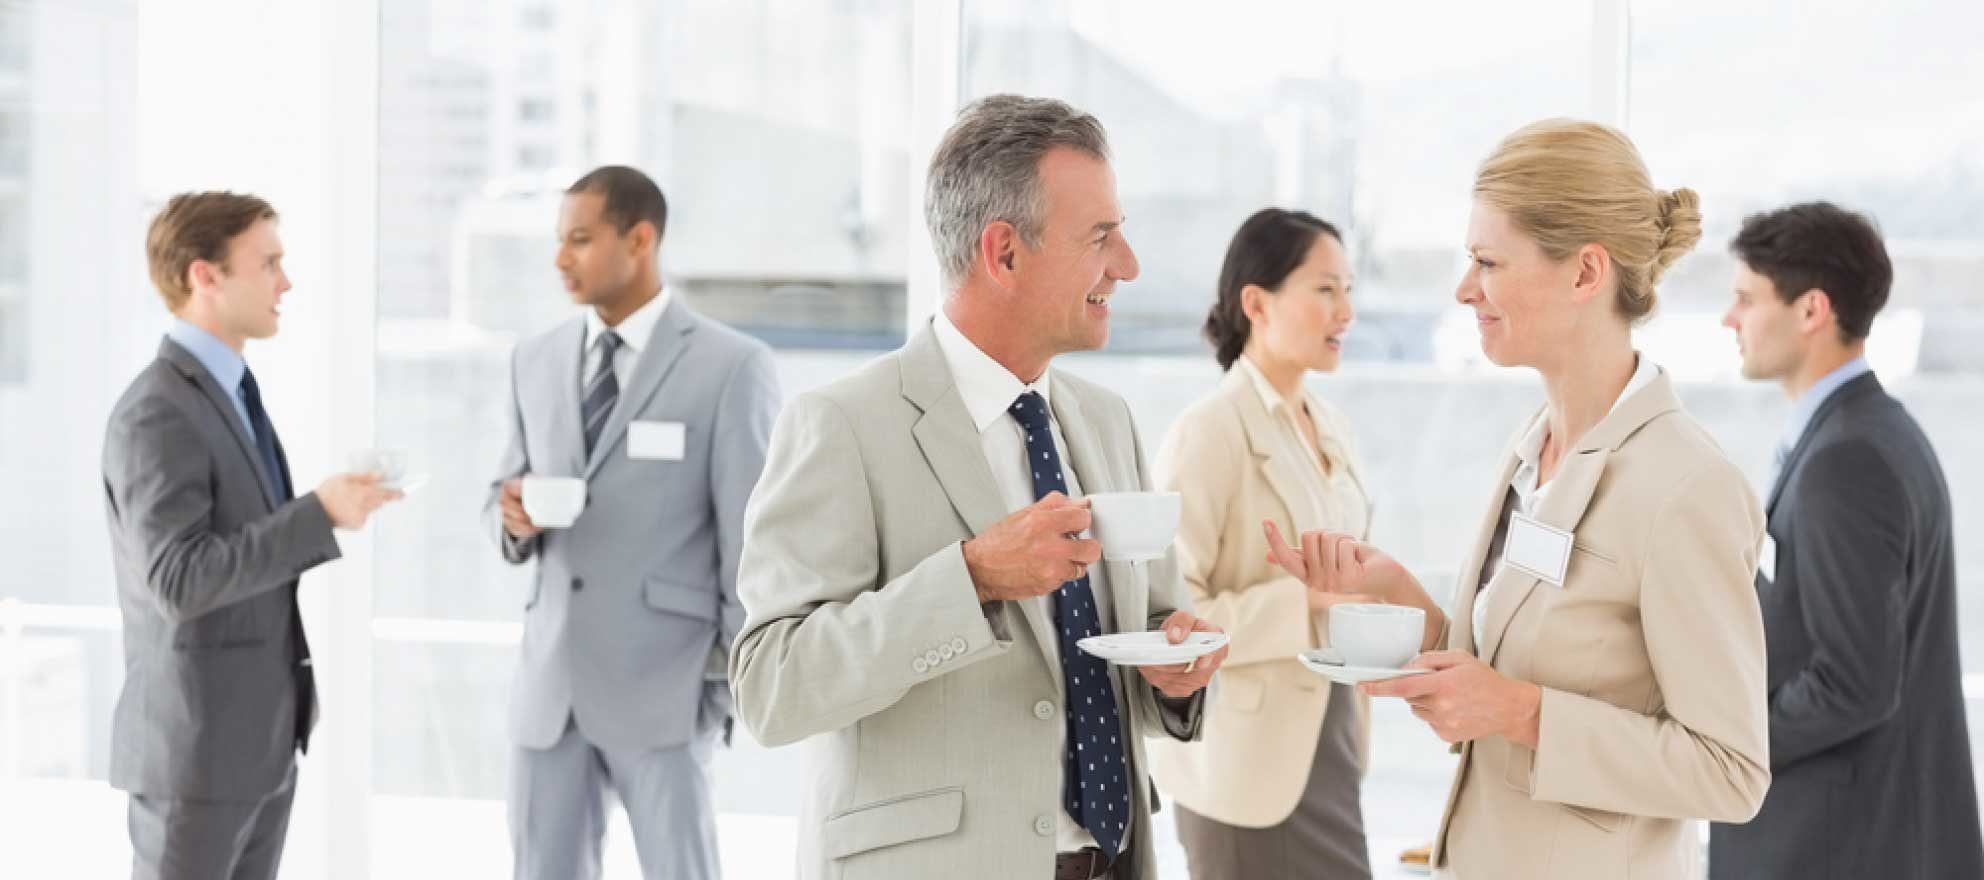 'Power networking' is secret to endless real estate referrals